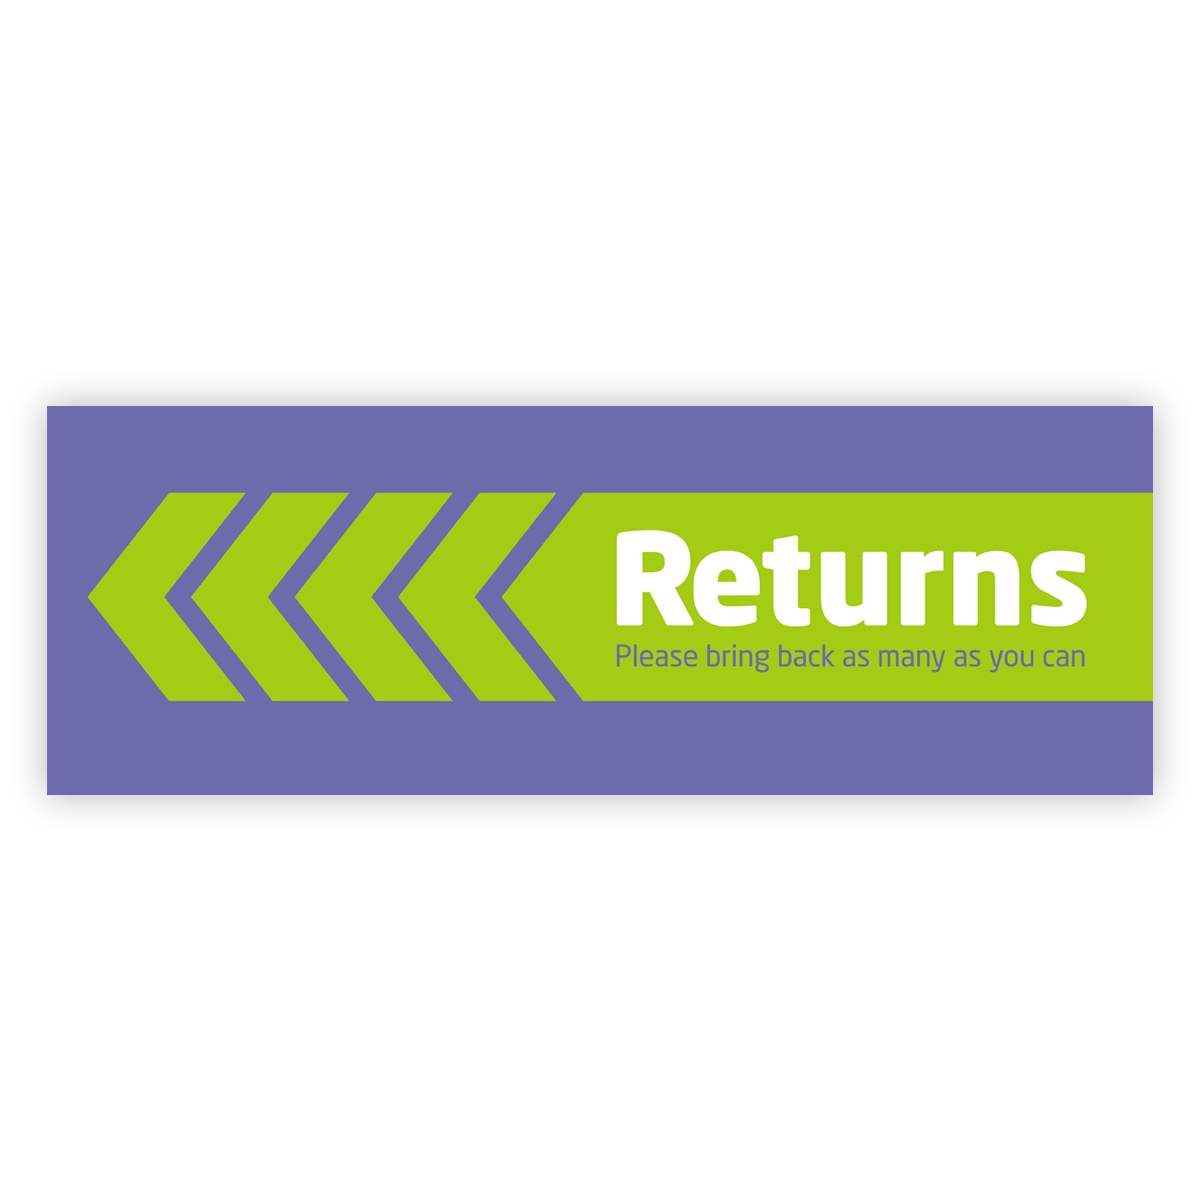 Poster - Returns: please bring back as many as you can